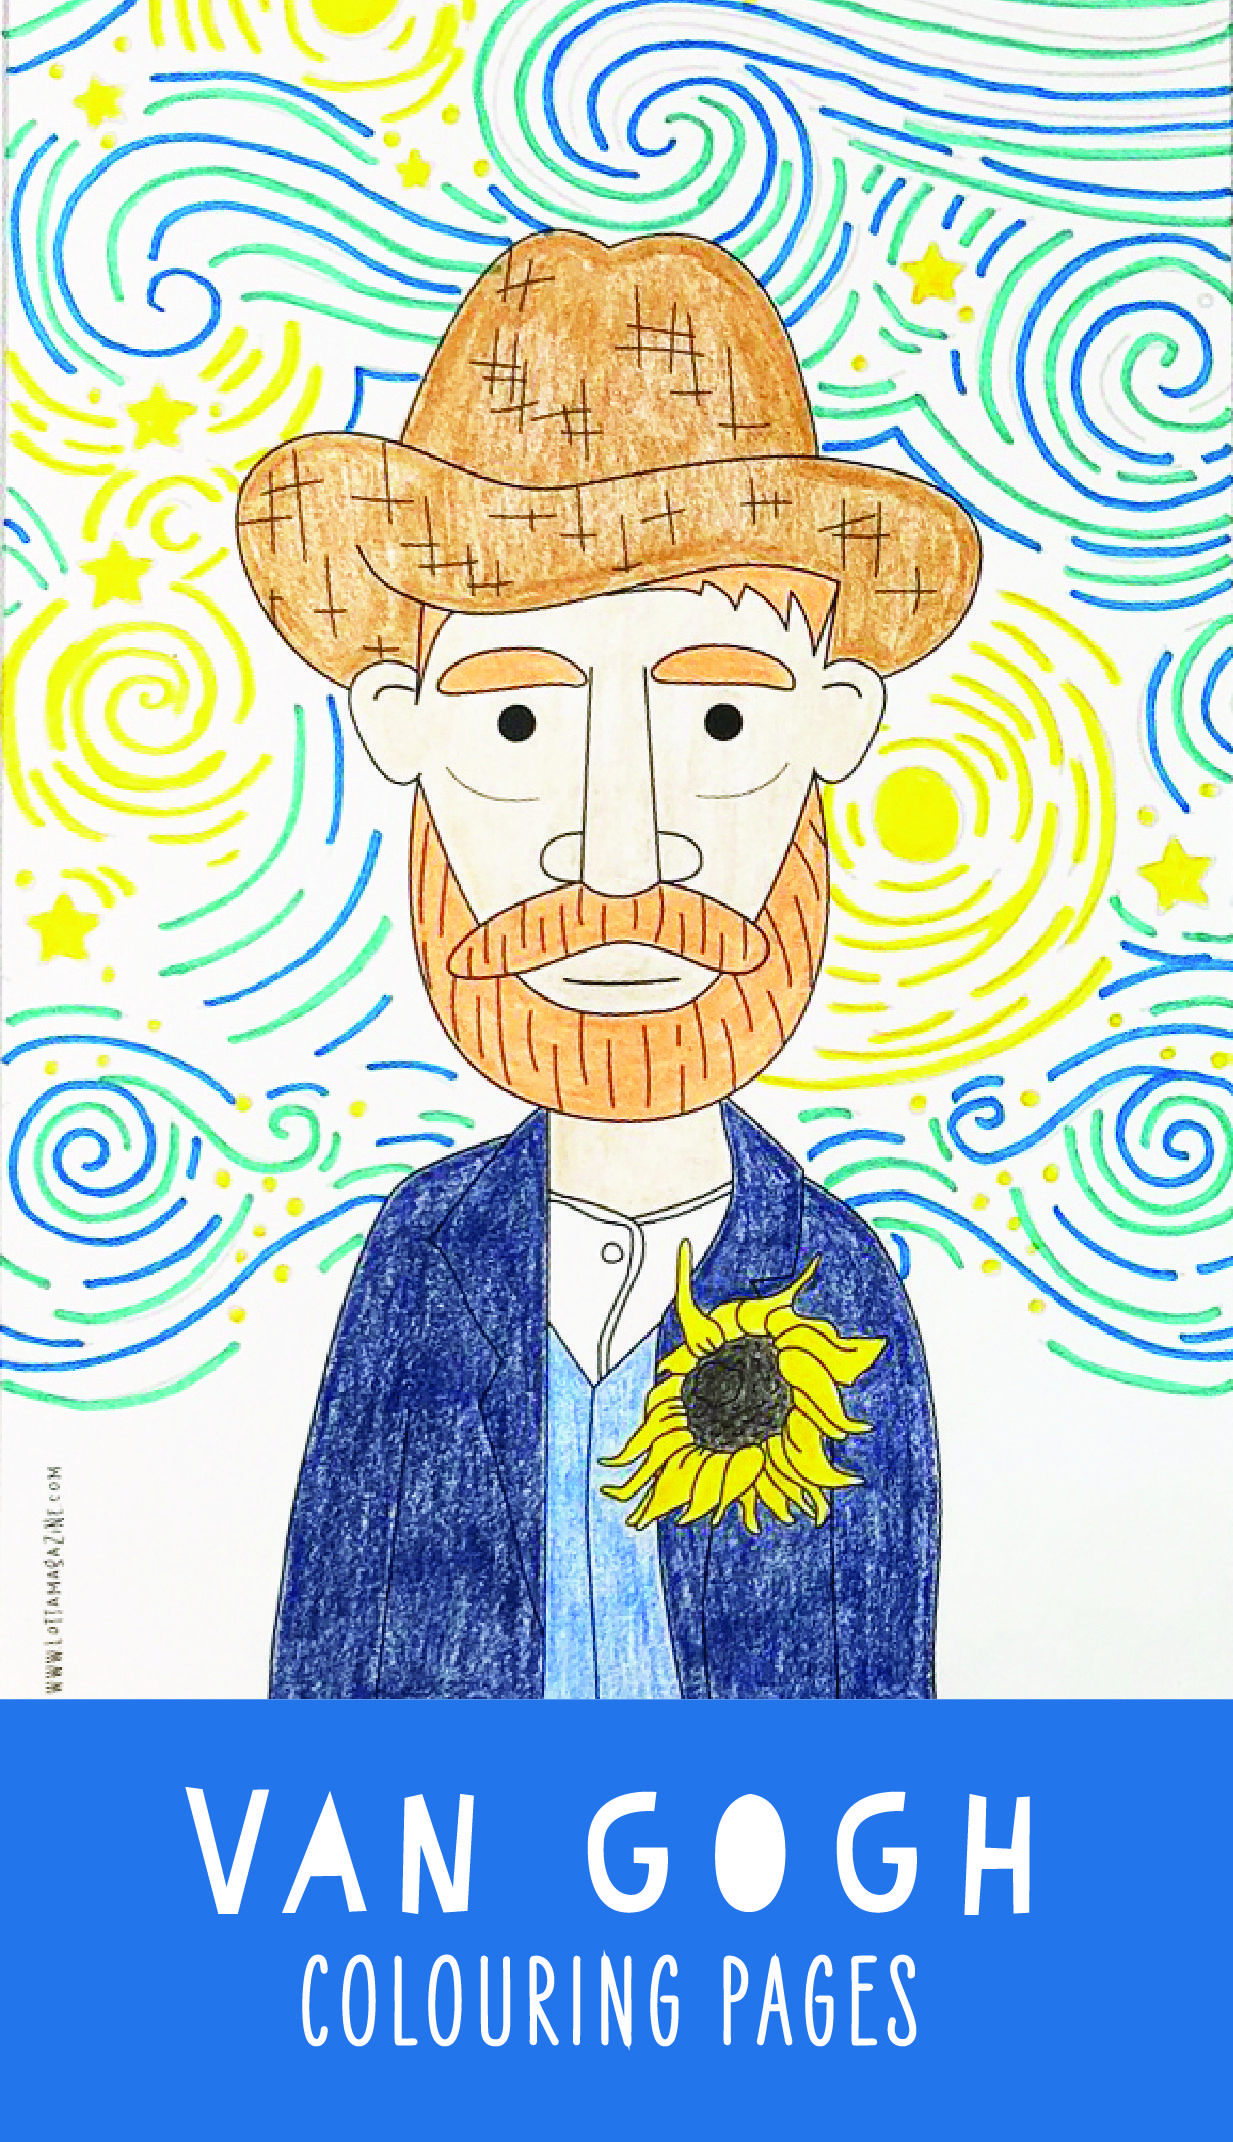 Fun Vincent Van Gogh Colouring Pages For Kids Kids Art